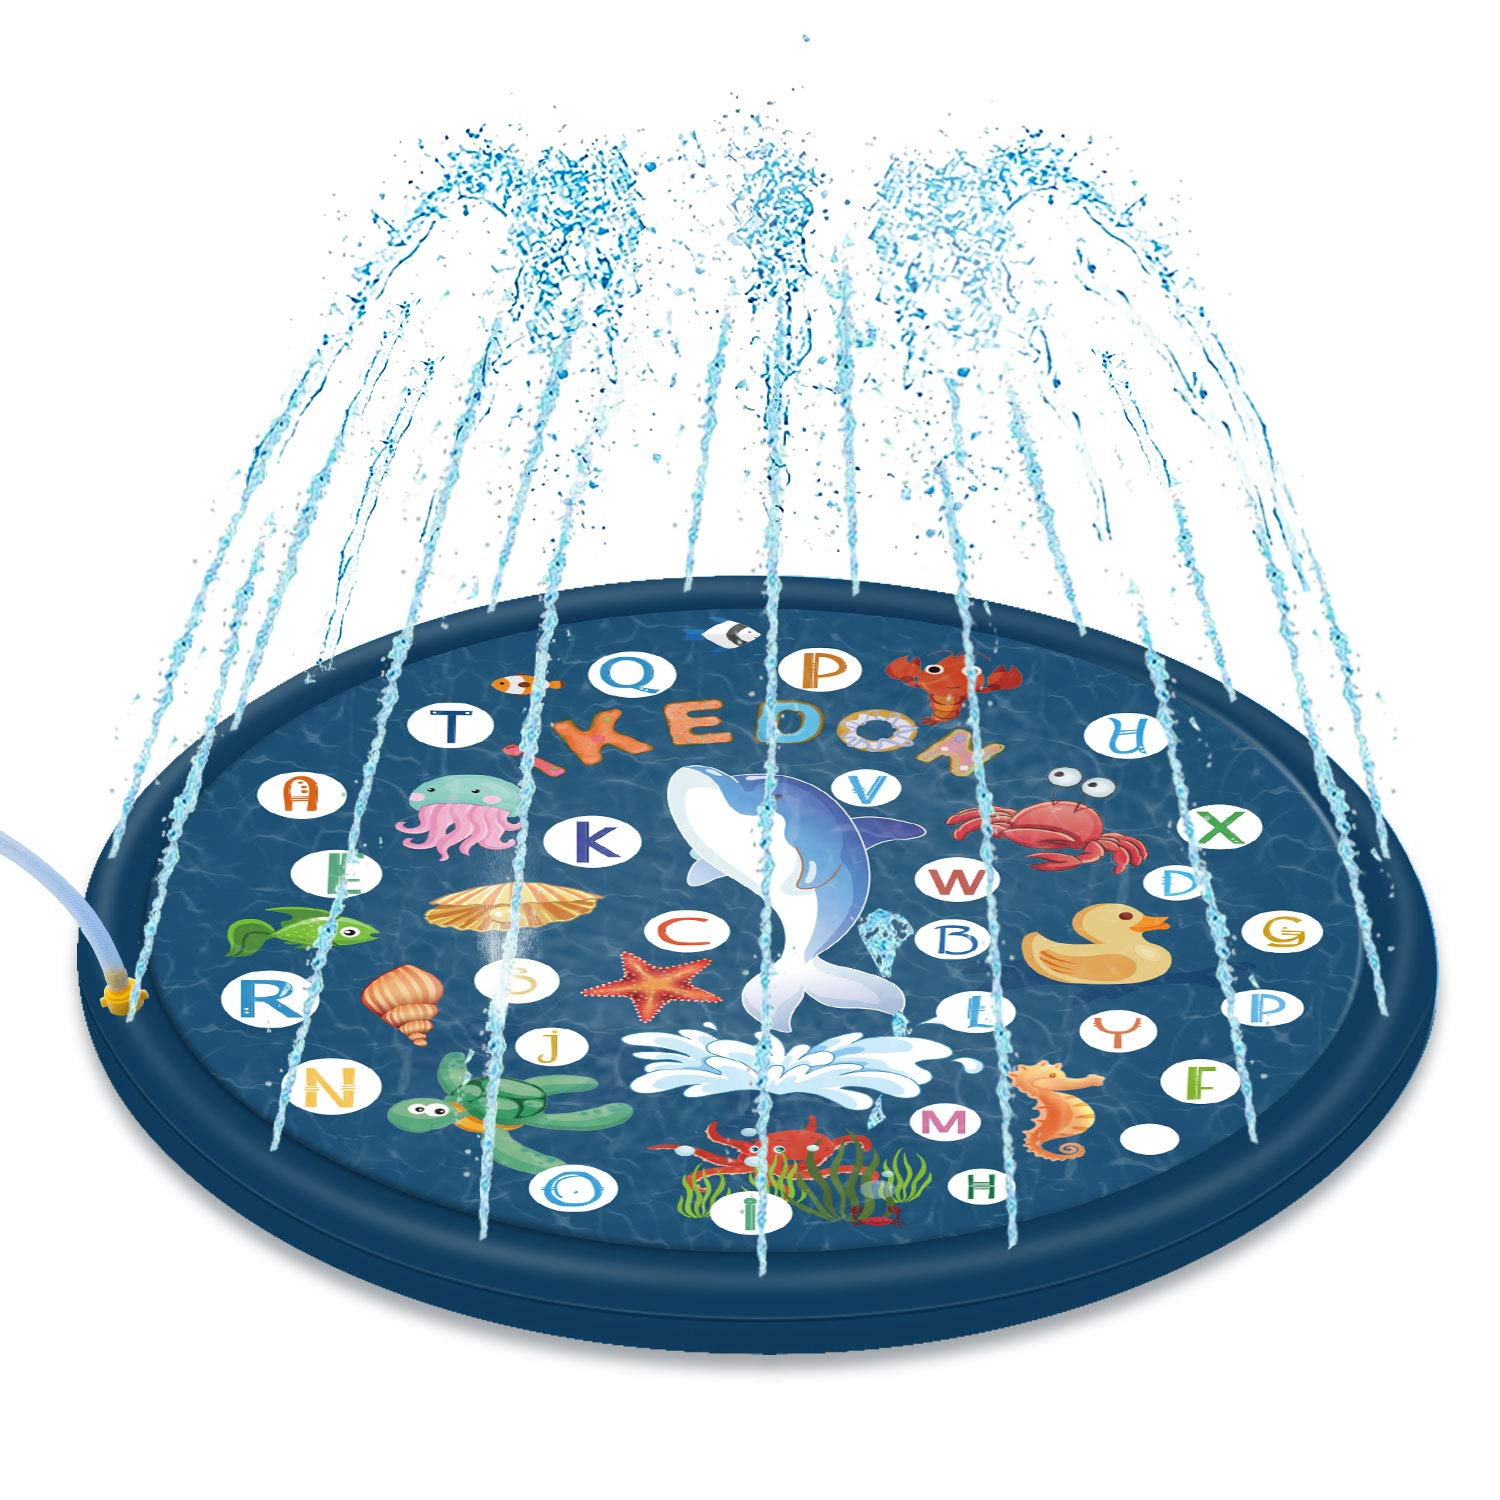 ikedon 68'' Sprinkler for Kids, 3-in-1 Splash Pad, from A to Z Toddler Pool for Wading Swimming and Learning, Inflatable Outdoor Water Toys Fun for 1 2 3 4 5 Year Old Toddlers, Kids, Boys and Girls